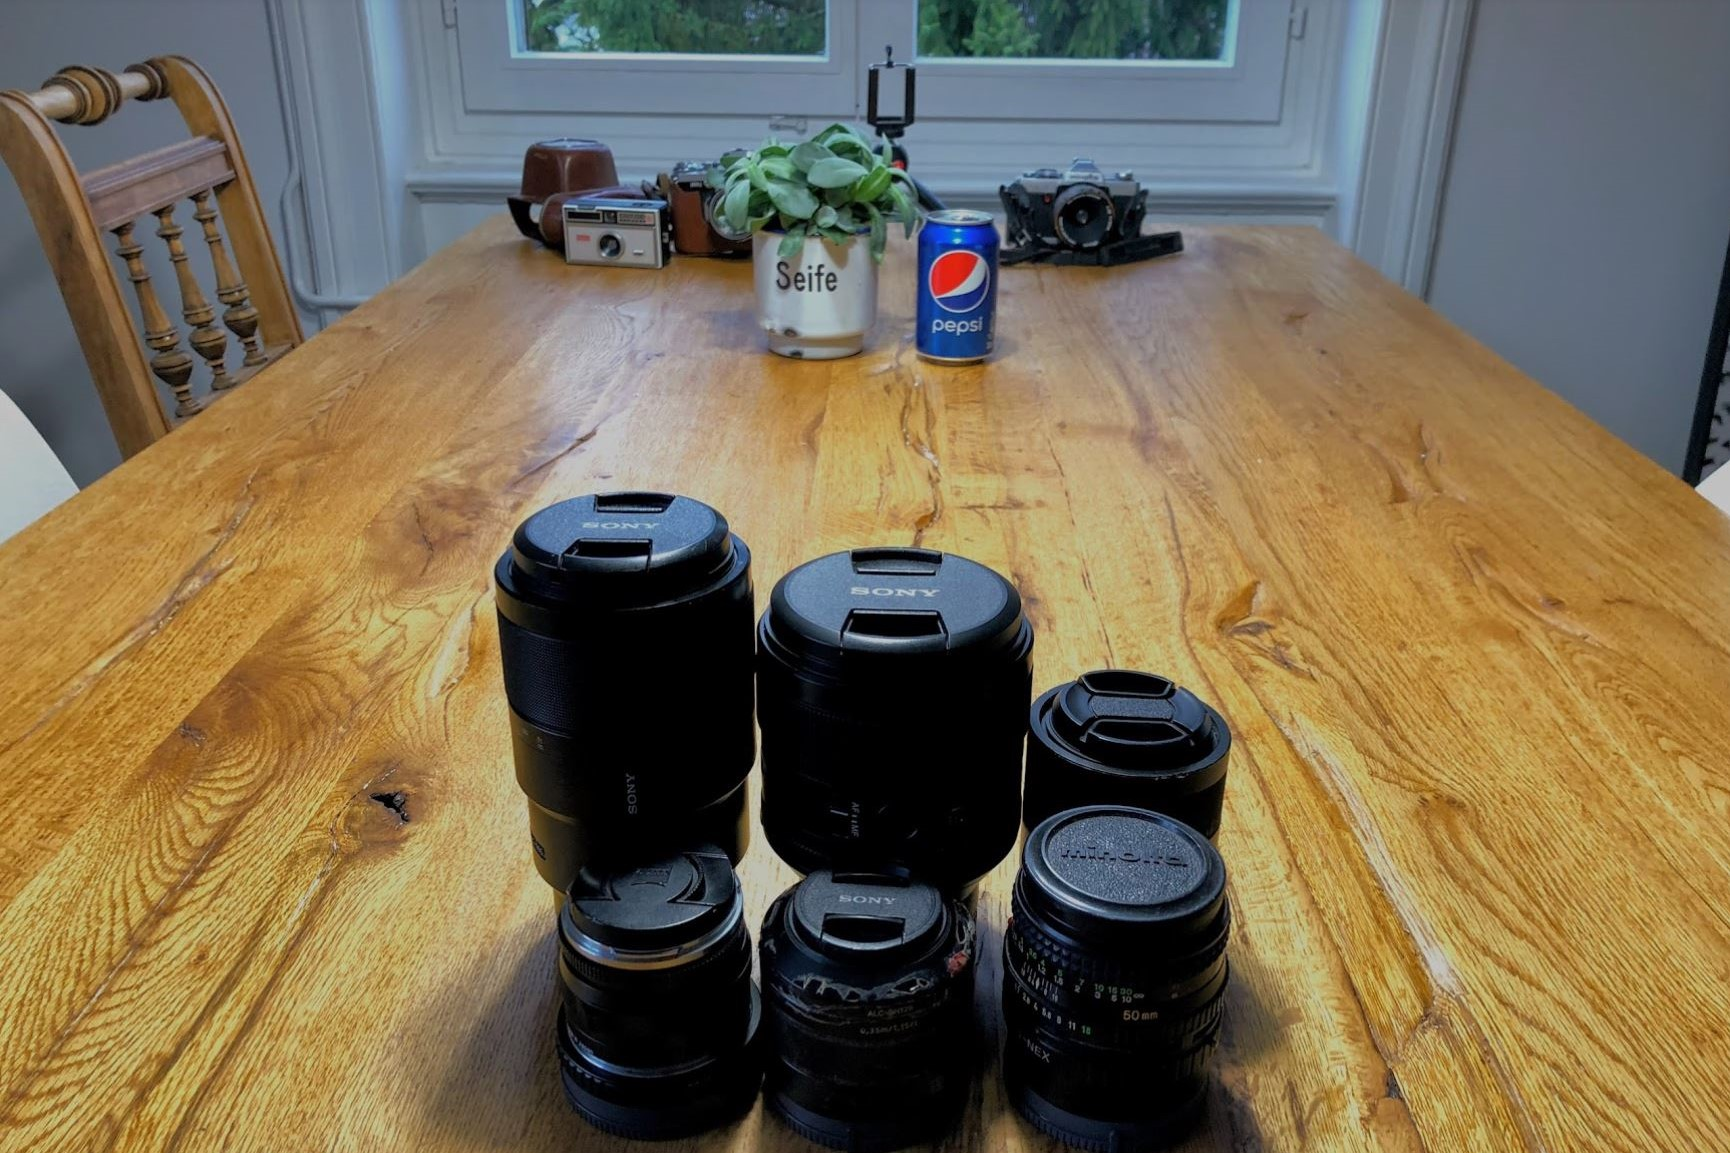 the lenses and the pepsi can